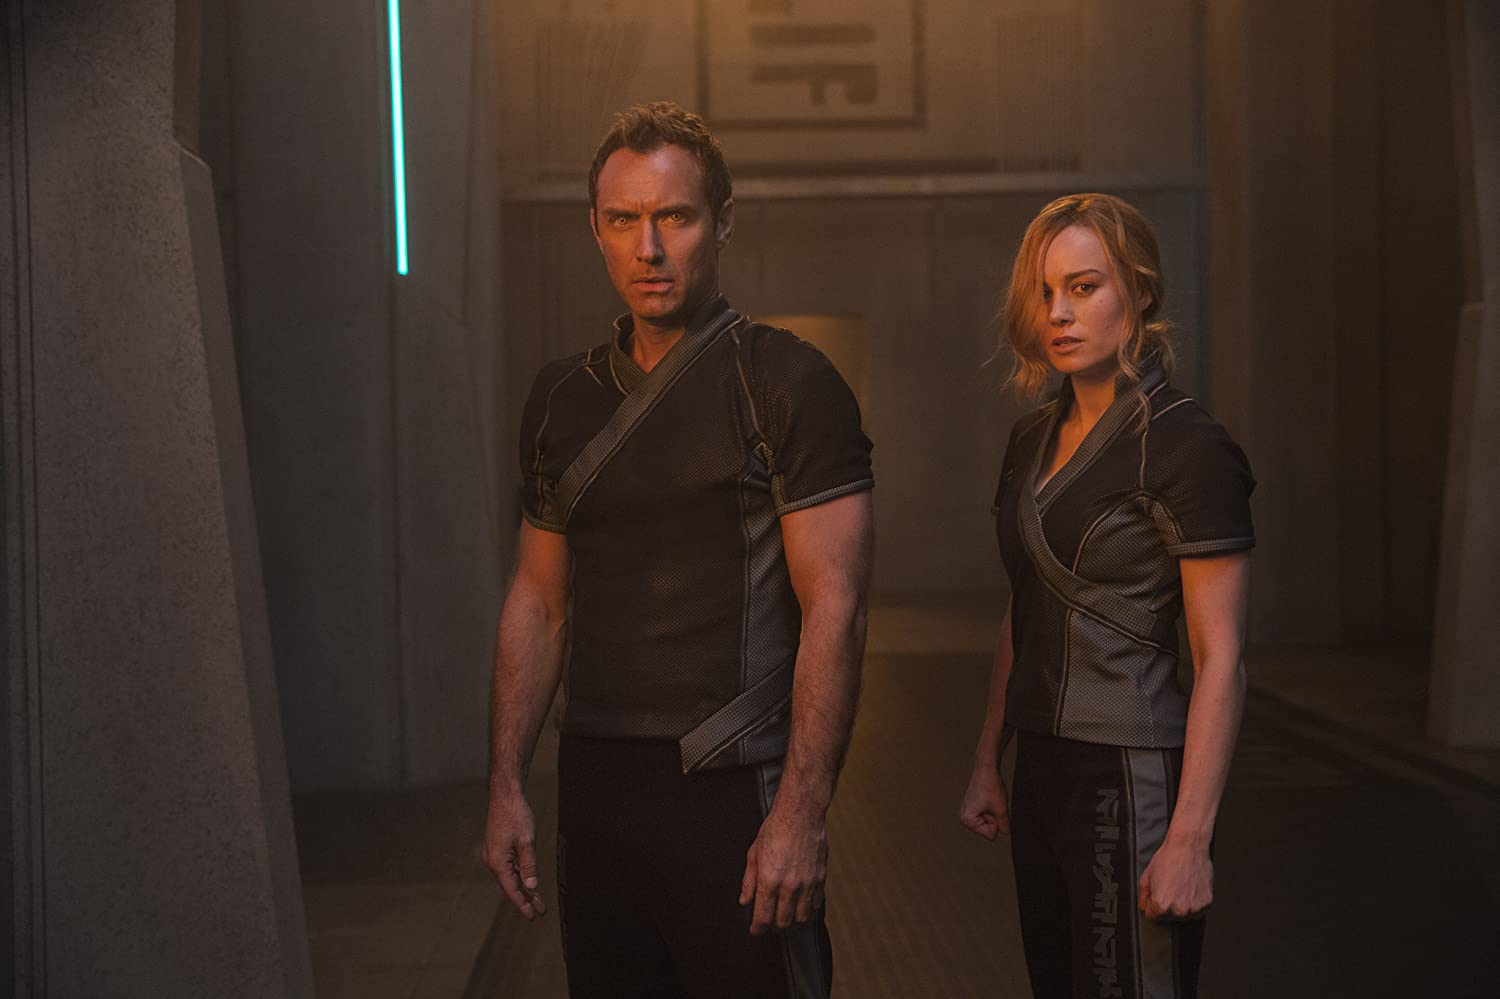 Jude Law and Brie Larson in Captain Marvel (2019)